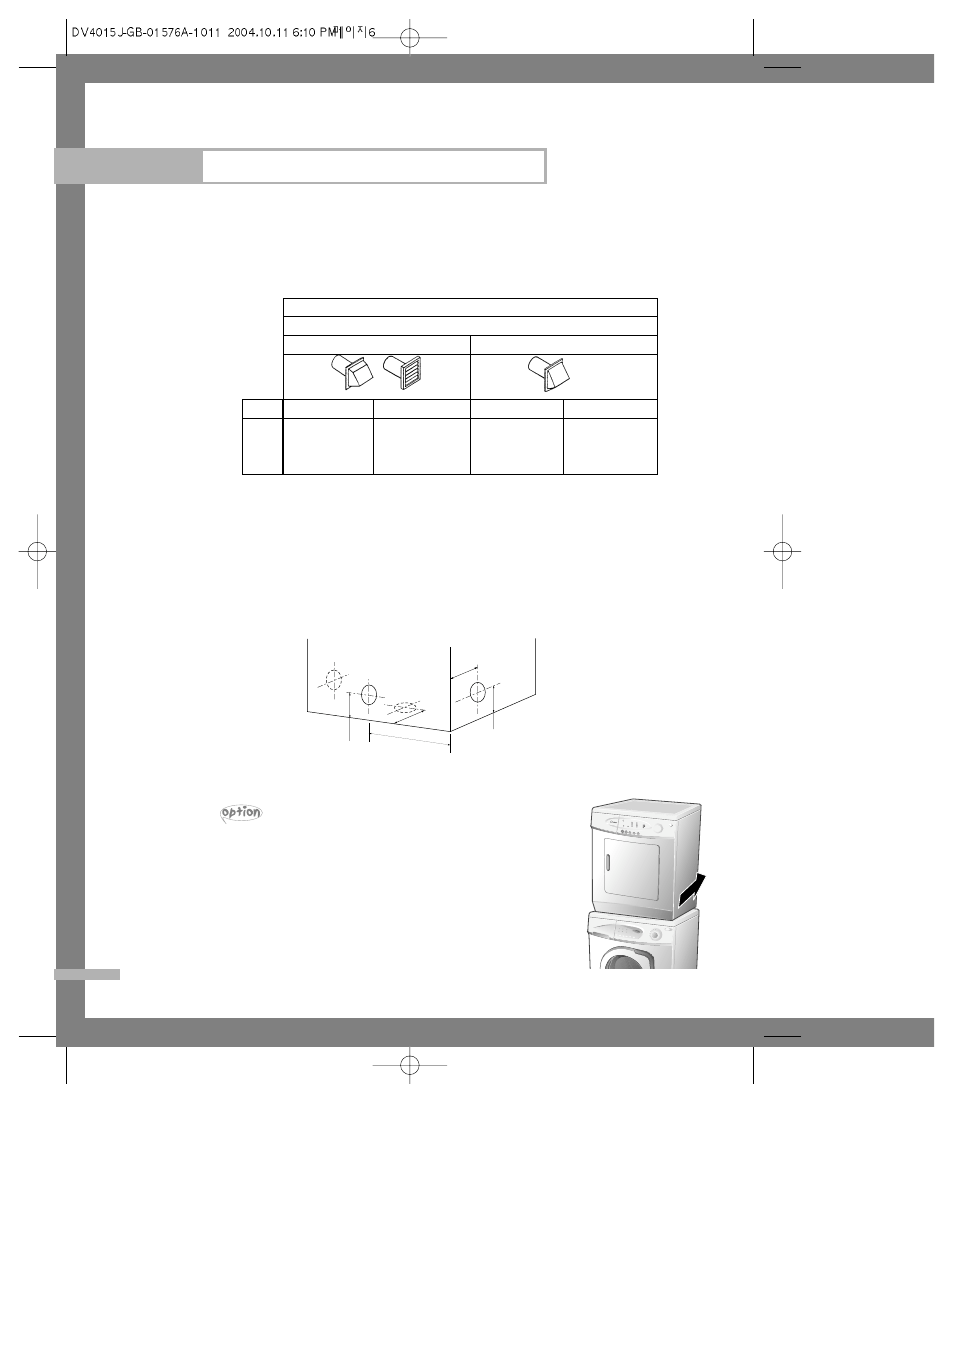 Exhaust length calculation, Exhaust directions, Special